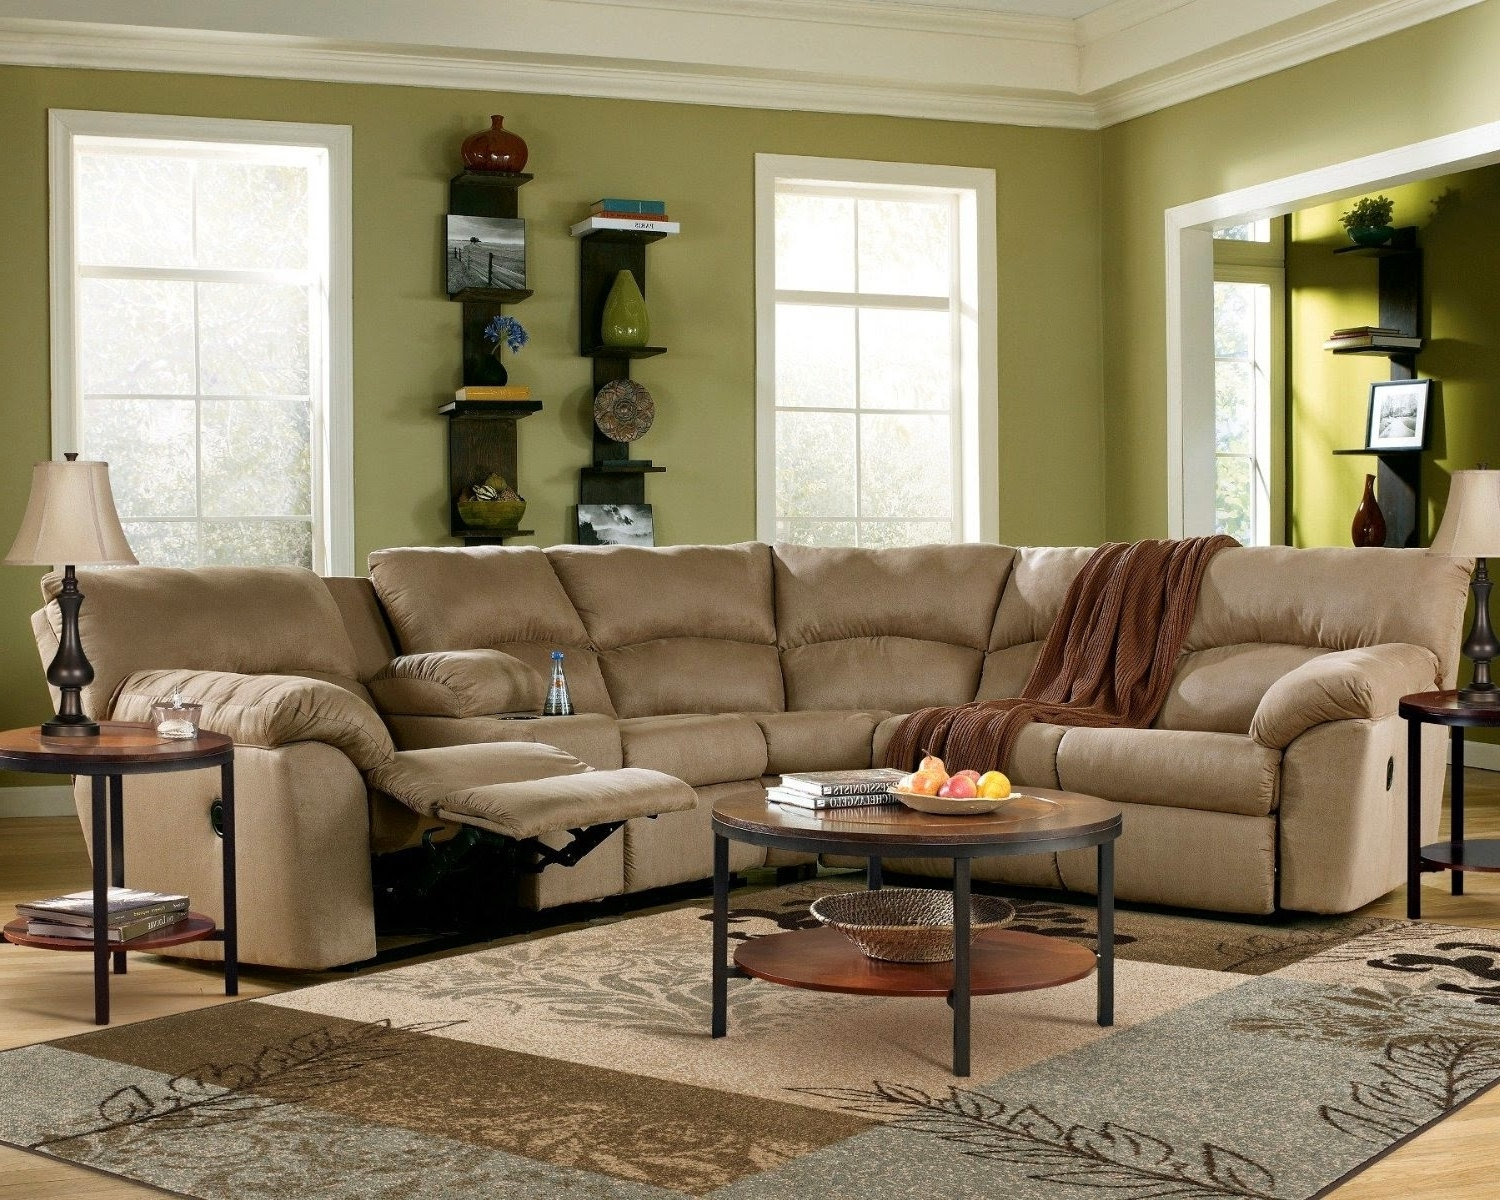 Best And Newest Sectional Sofas At Amazon For Curved Sofa: Curved Reclining Sofa (View 4 of 20)